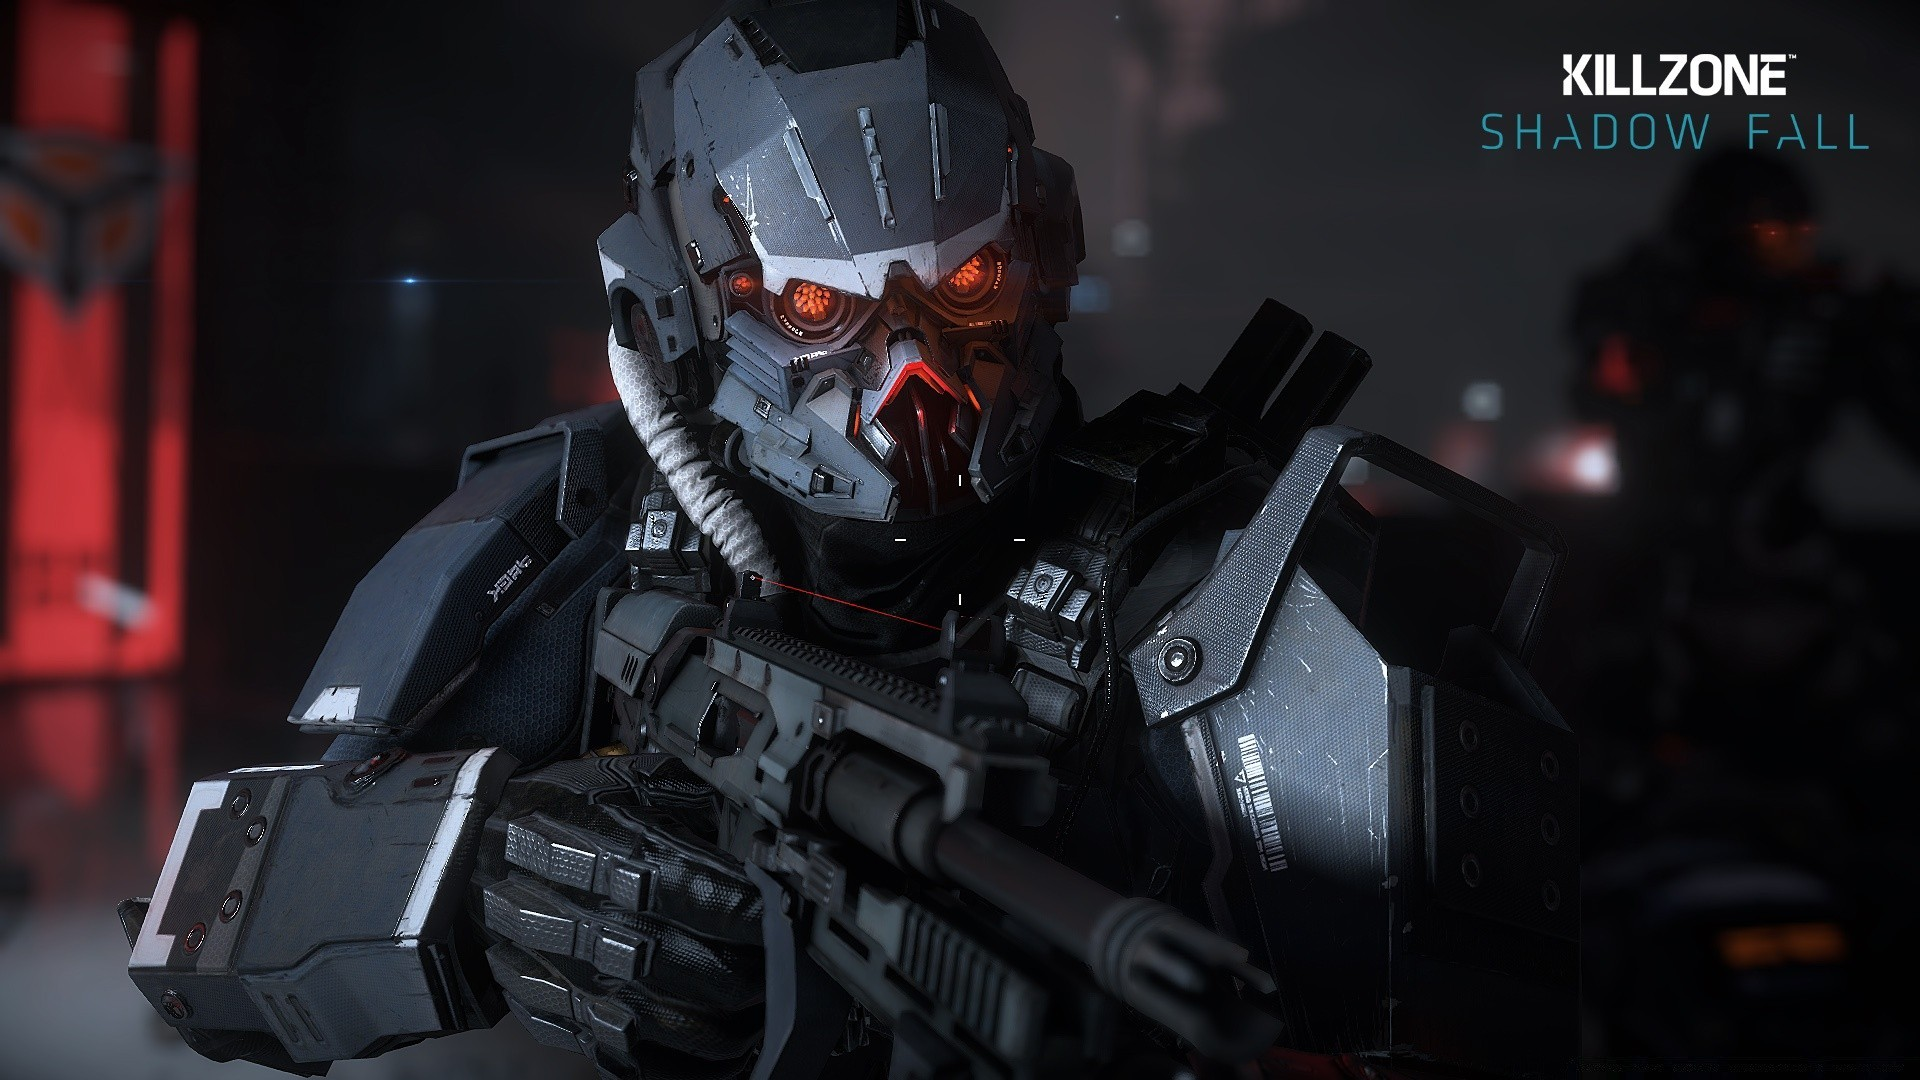 Killzone Competition Action Weapon Military Technology Killzone Shadow Fall Helghast Soldier 1920x1080 Wallpaper Teahub Io